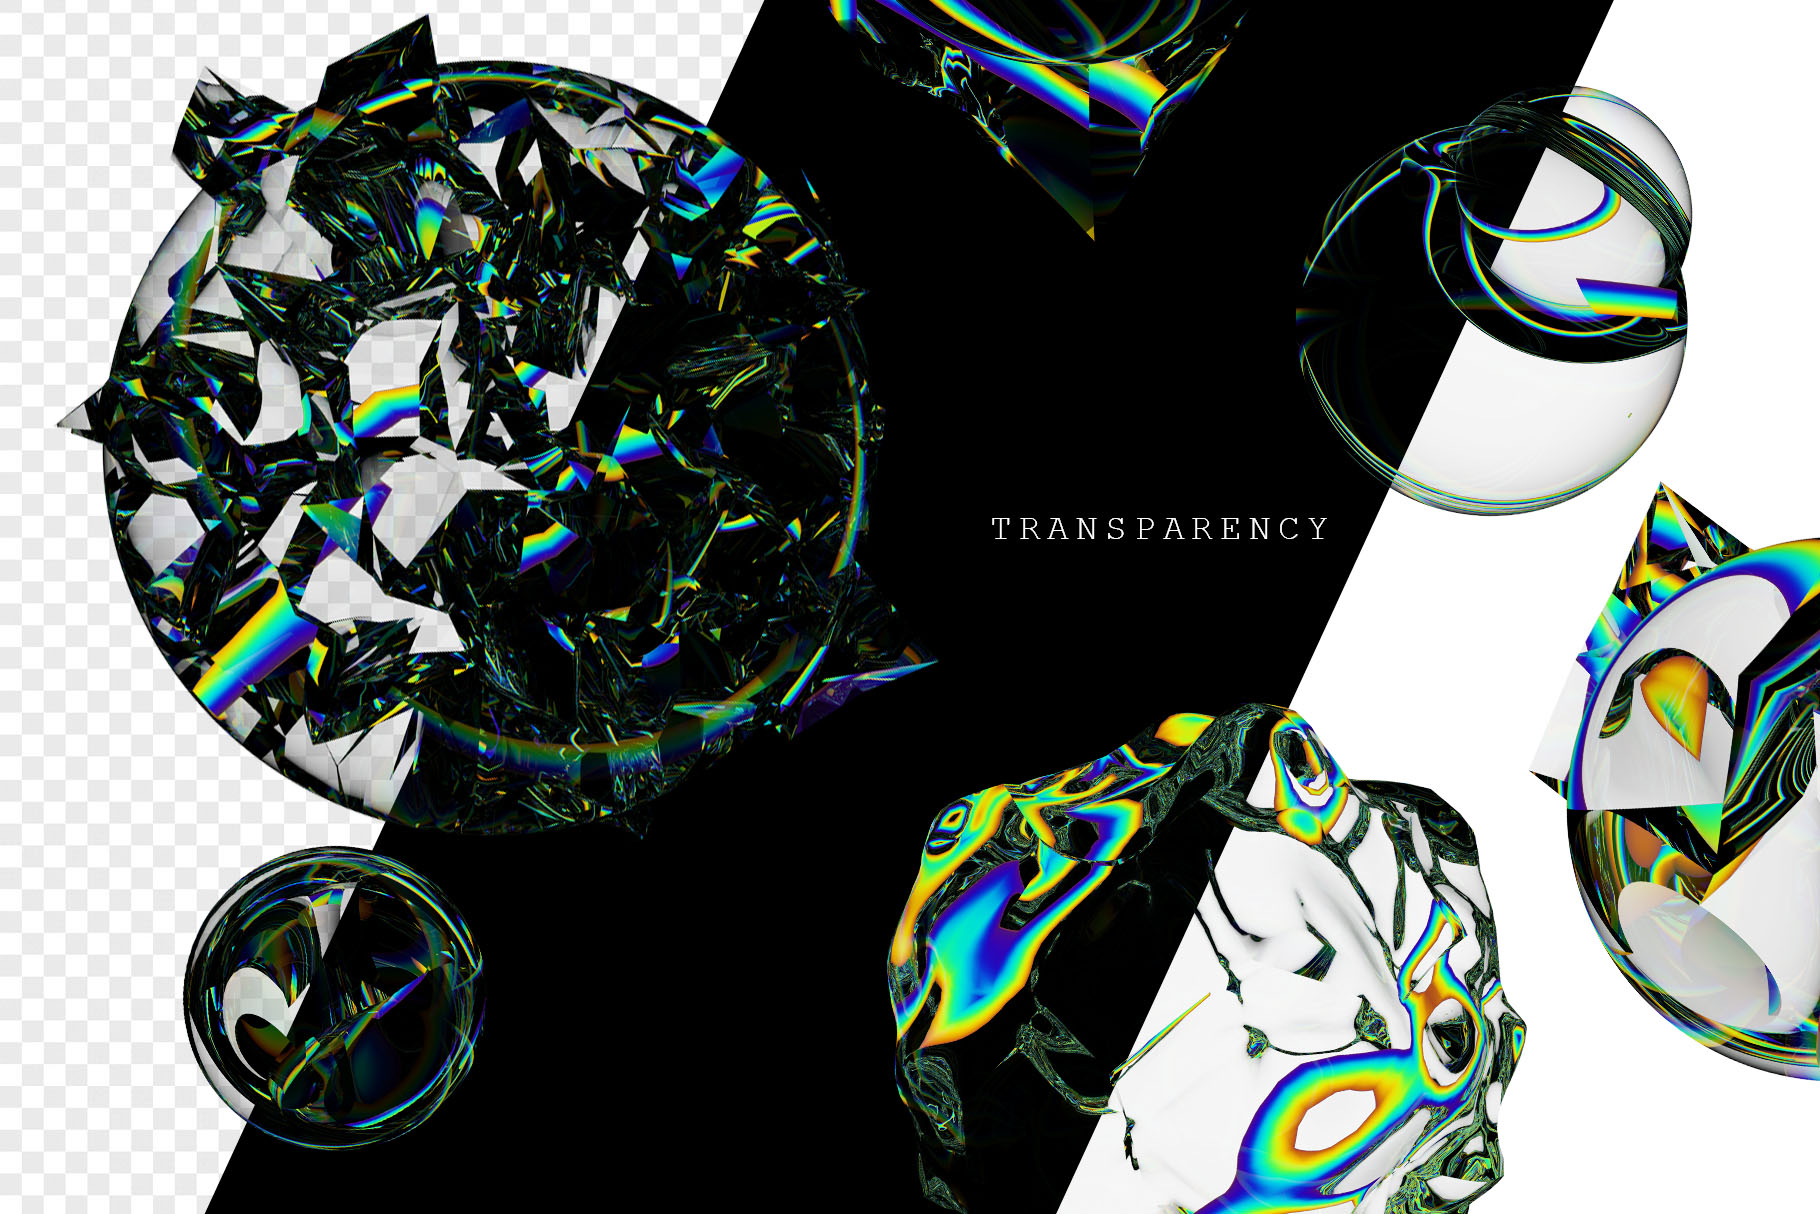 Holographic Shapes and Textures example image 5